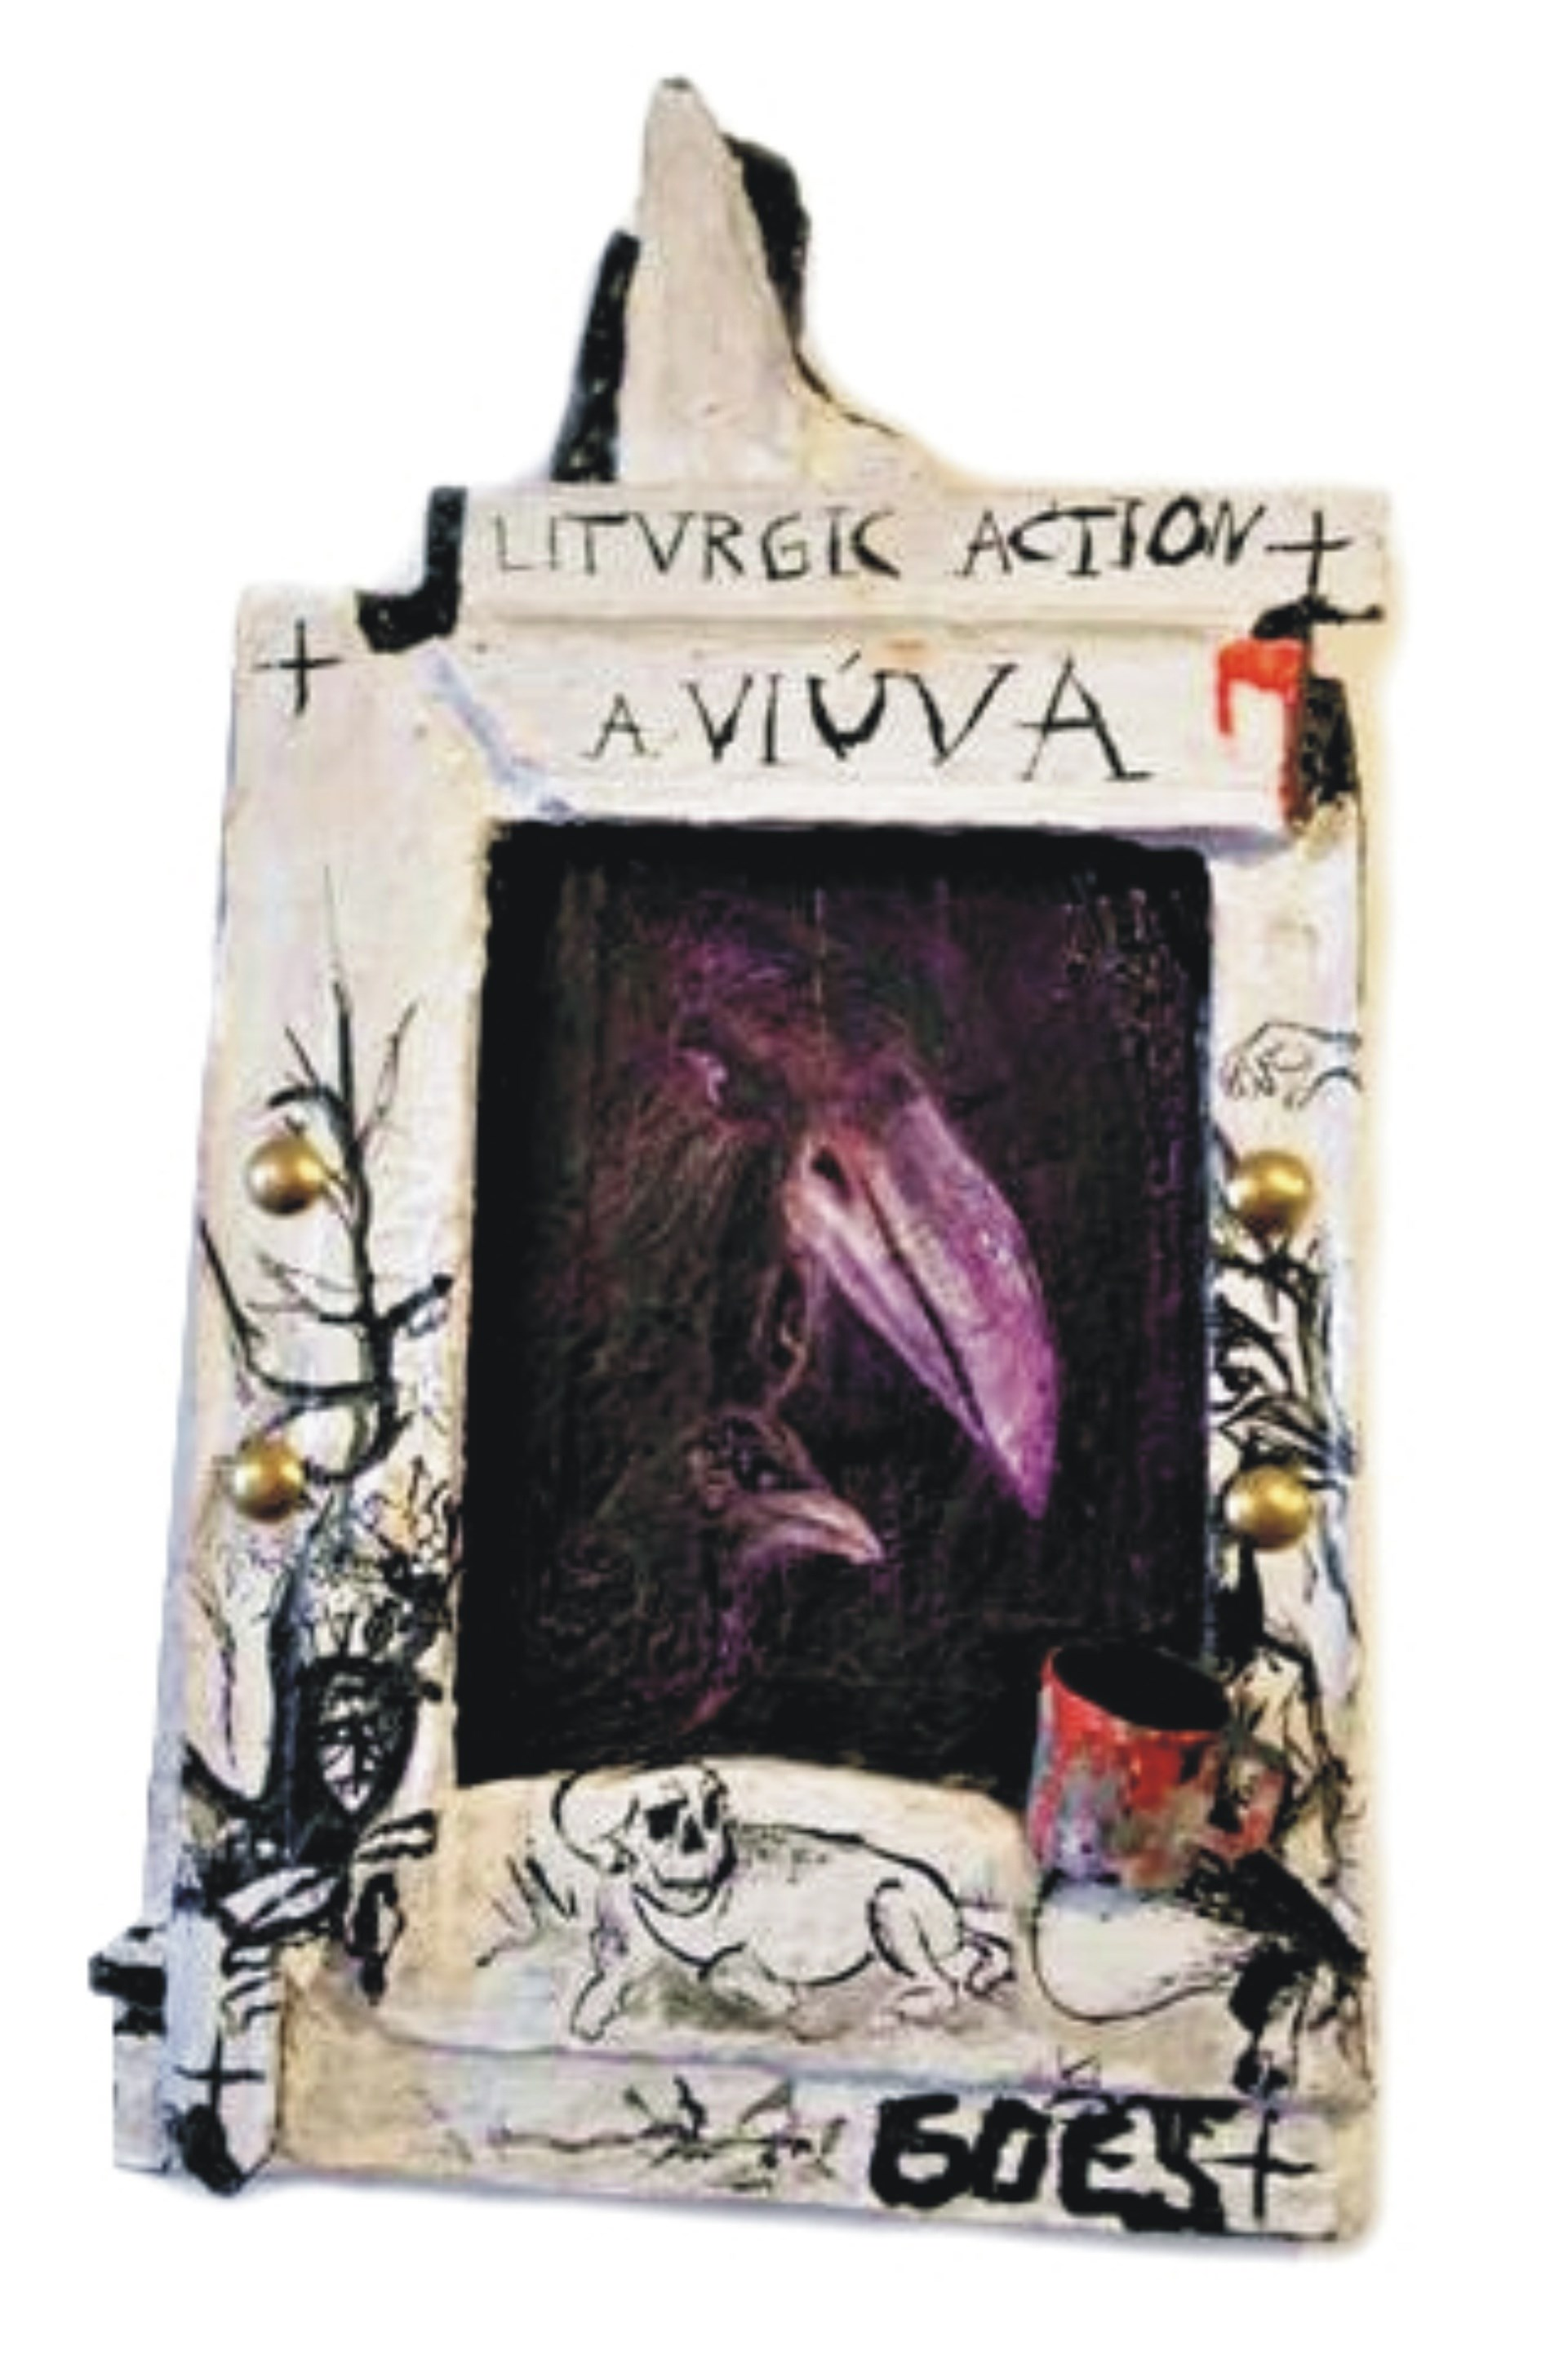 A Viúva: Liturgic Action, original Animals Acrylic Painting by Diogo  Goes